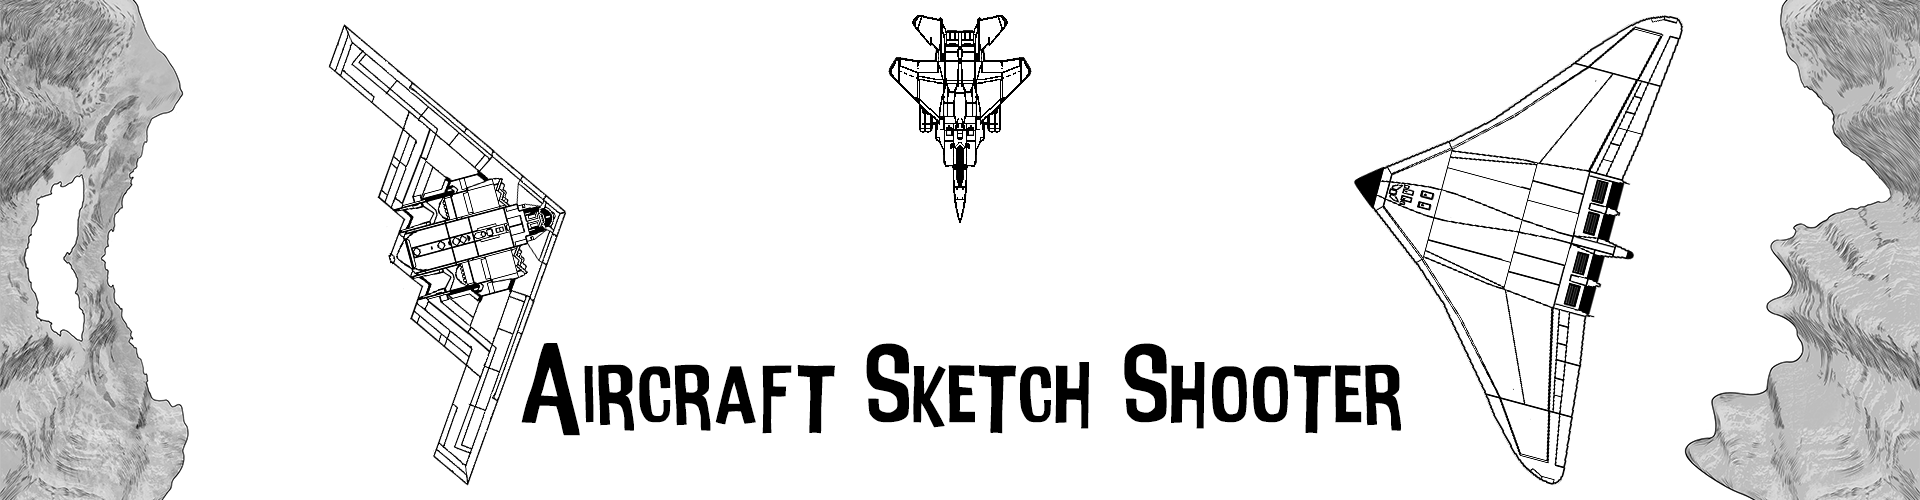 Aircraft Sketch Shooter